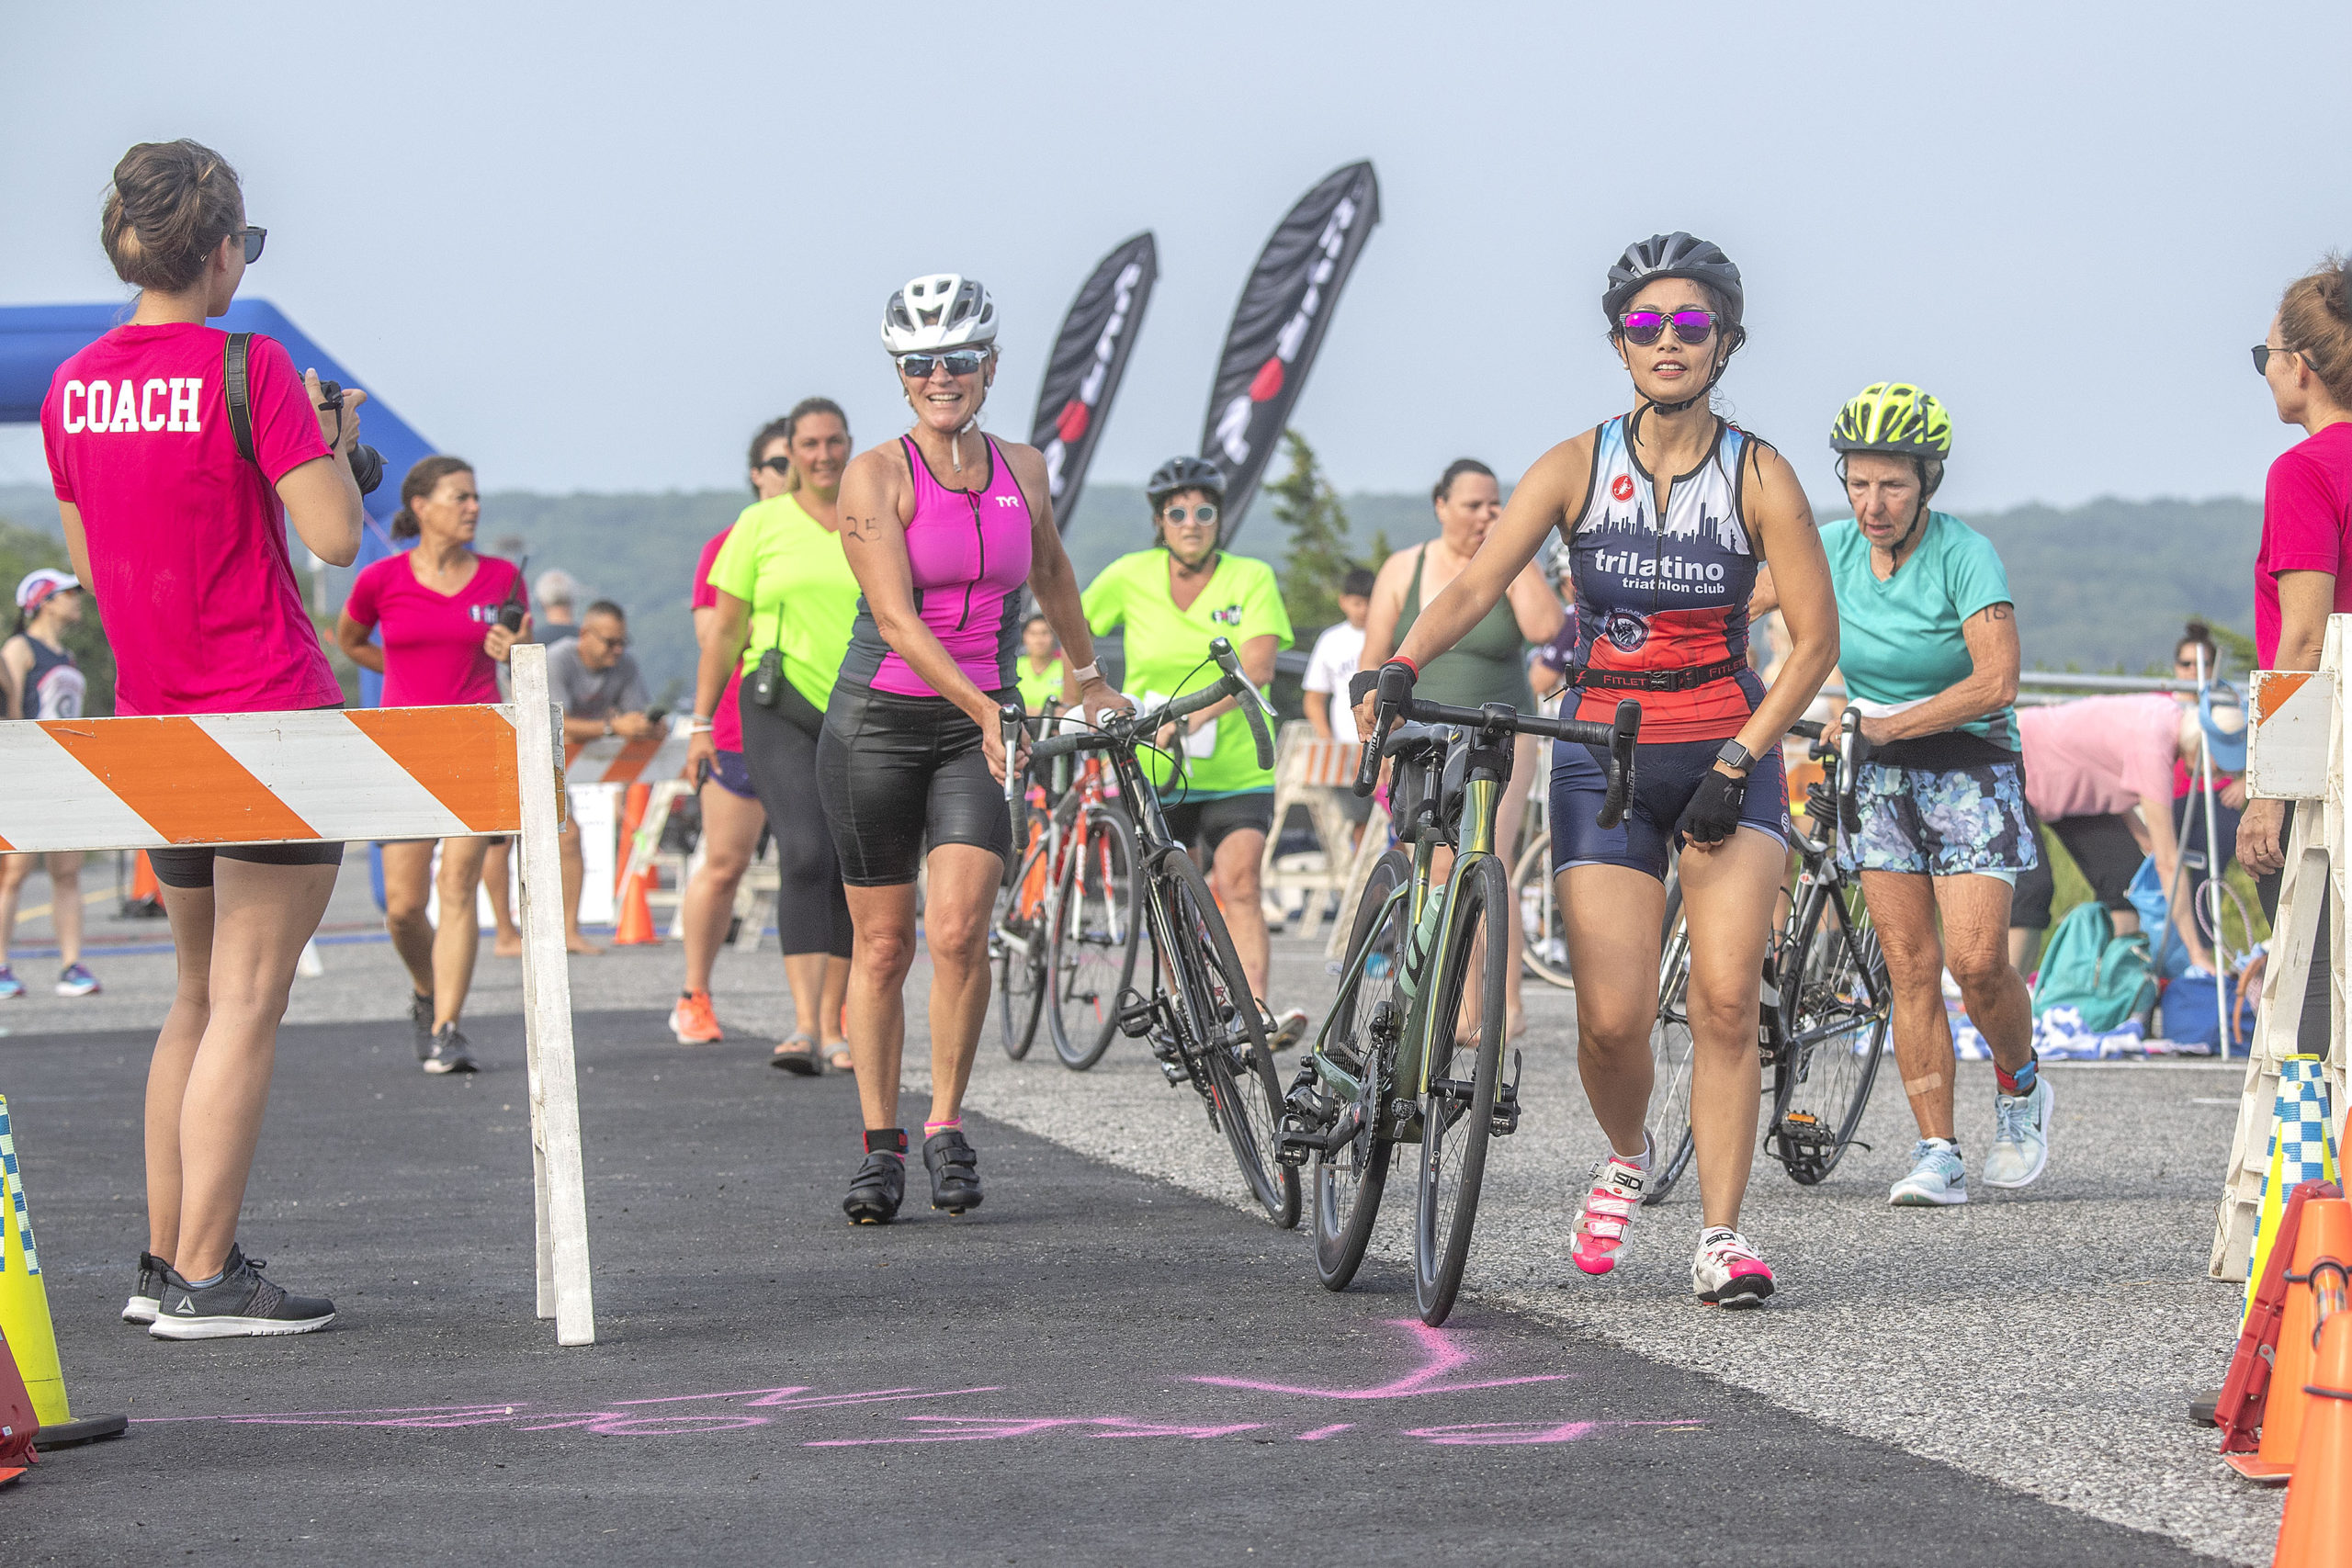 Competitors transition from swimming to biking for the second leg of the Hamptons Young at Heart Triathlon.